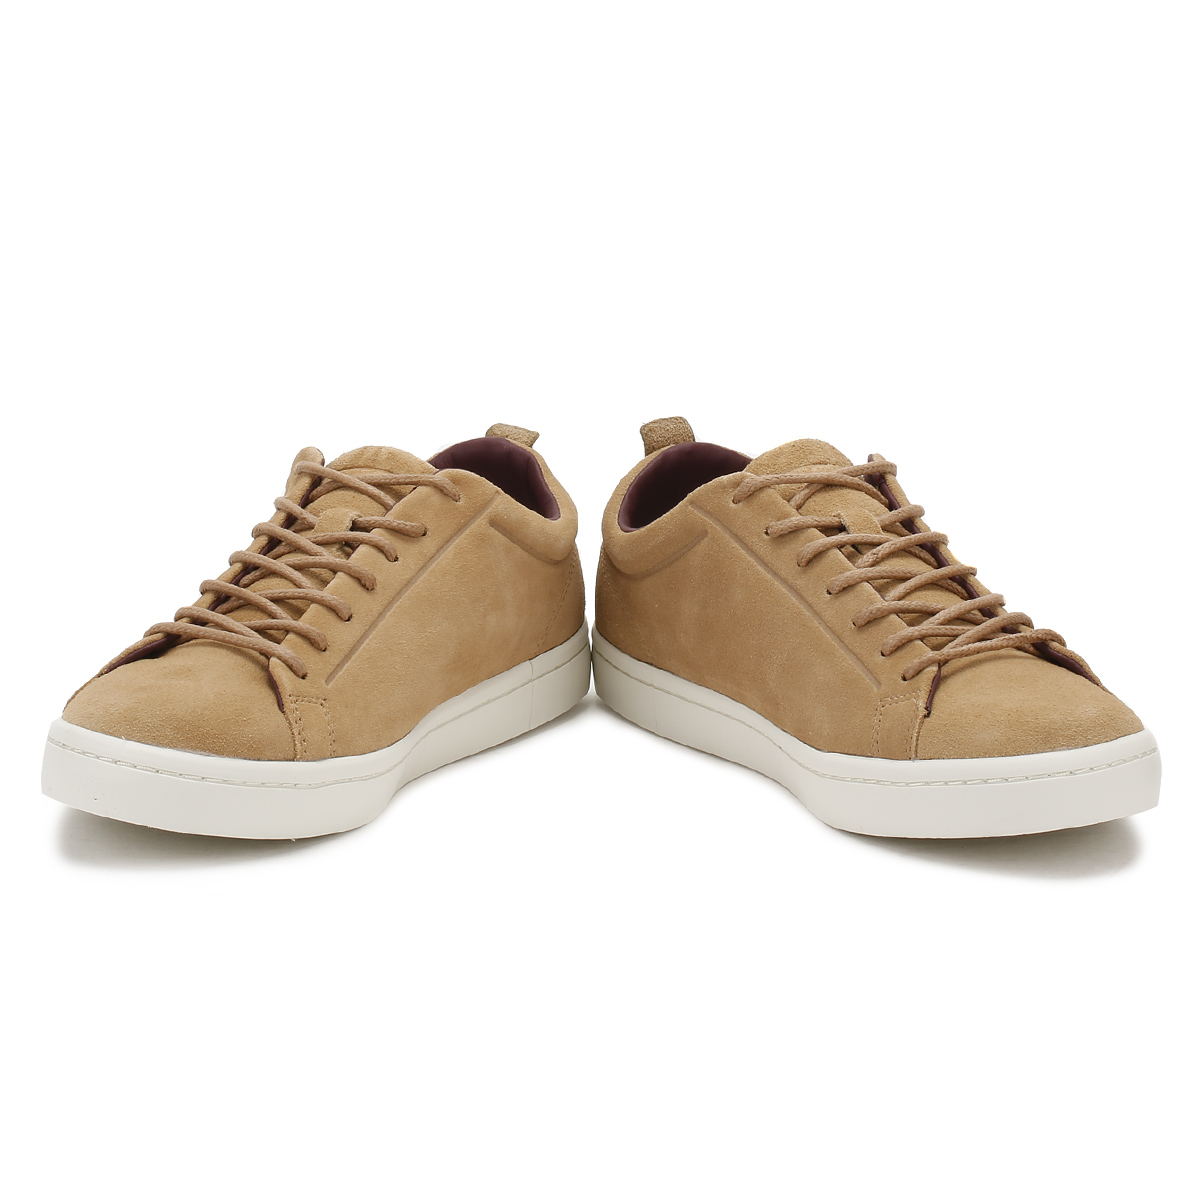 dd4416d35 Details about Lacoste Mens Trainers Light Tan Straightset 317 3 Suede Sport  Casual Shoes